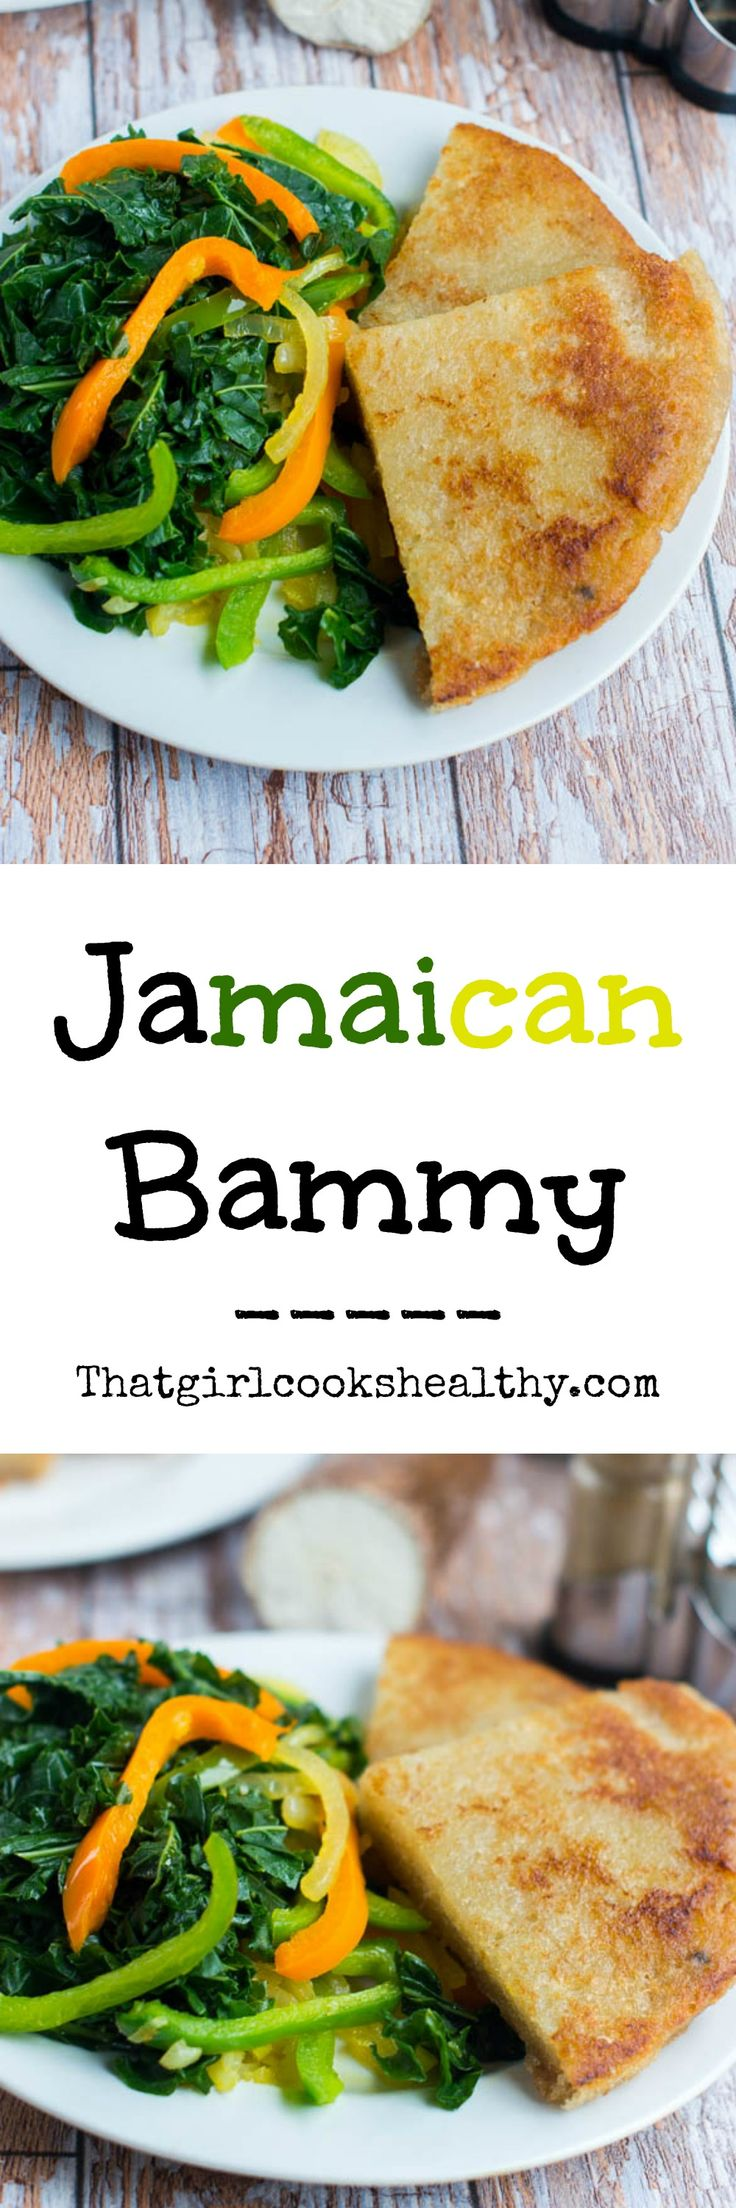 Jamaican bammy - Traditional flatbread saturated in milk that's made from grated cassavaFor those of you who aren't familiar with what bammy is, well that's quite alright. In one of my previous articles entitled what is caribbean food I went into tremendous detail about the various ground prov